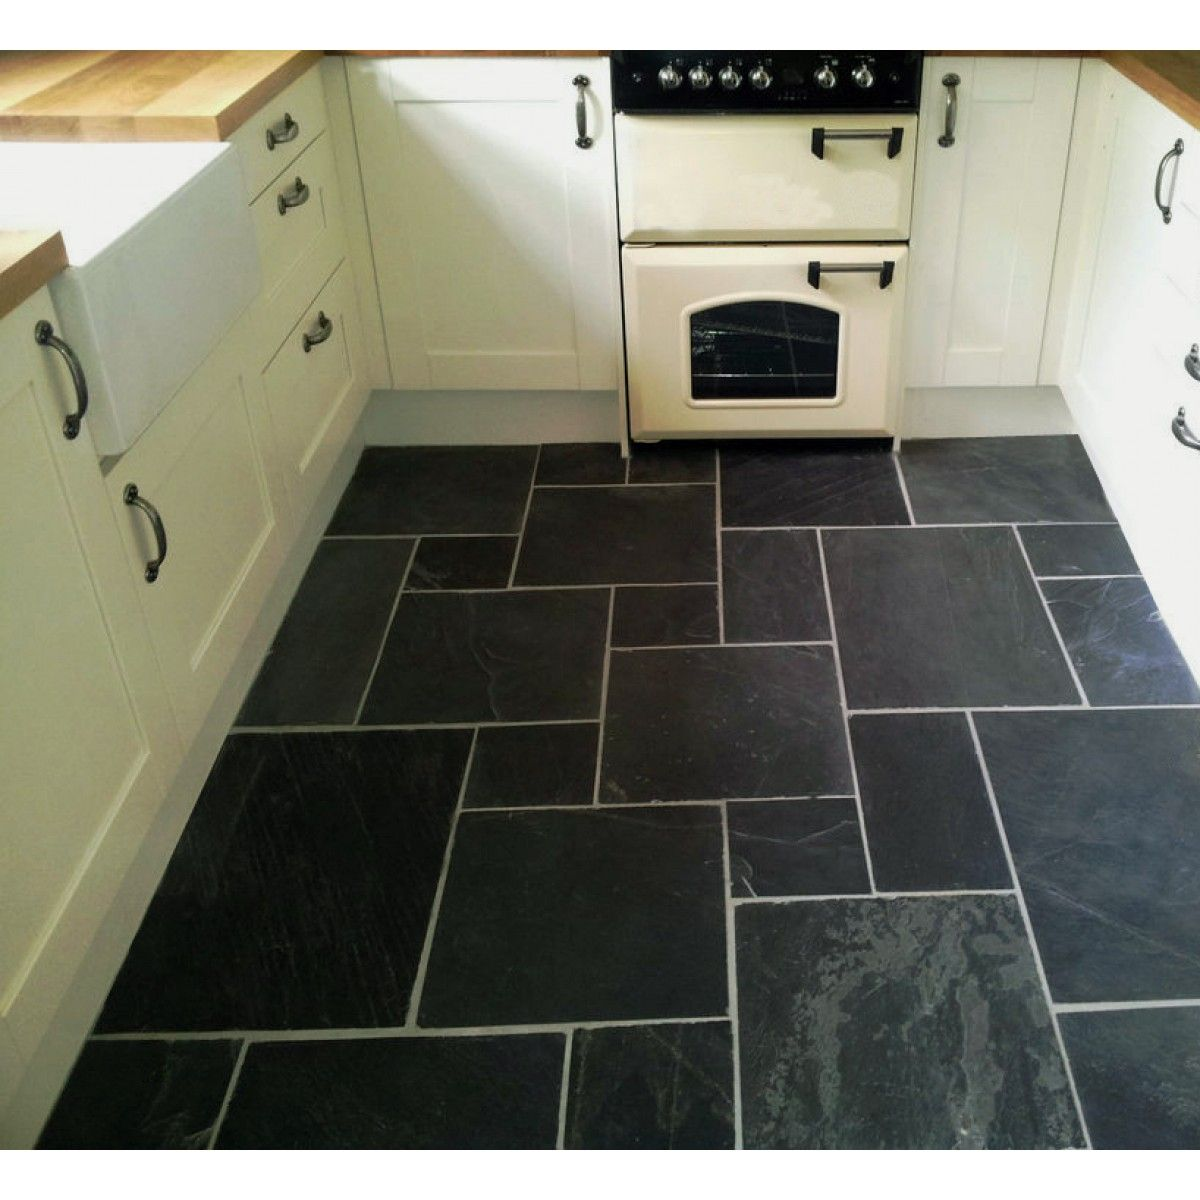 Crown tiles chima black slate combination floor tiles crown crown tiles chima black slate combination floor tiles crown tiles dailygadgetfo Choice Image